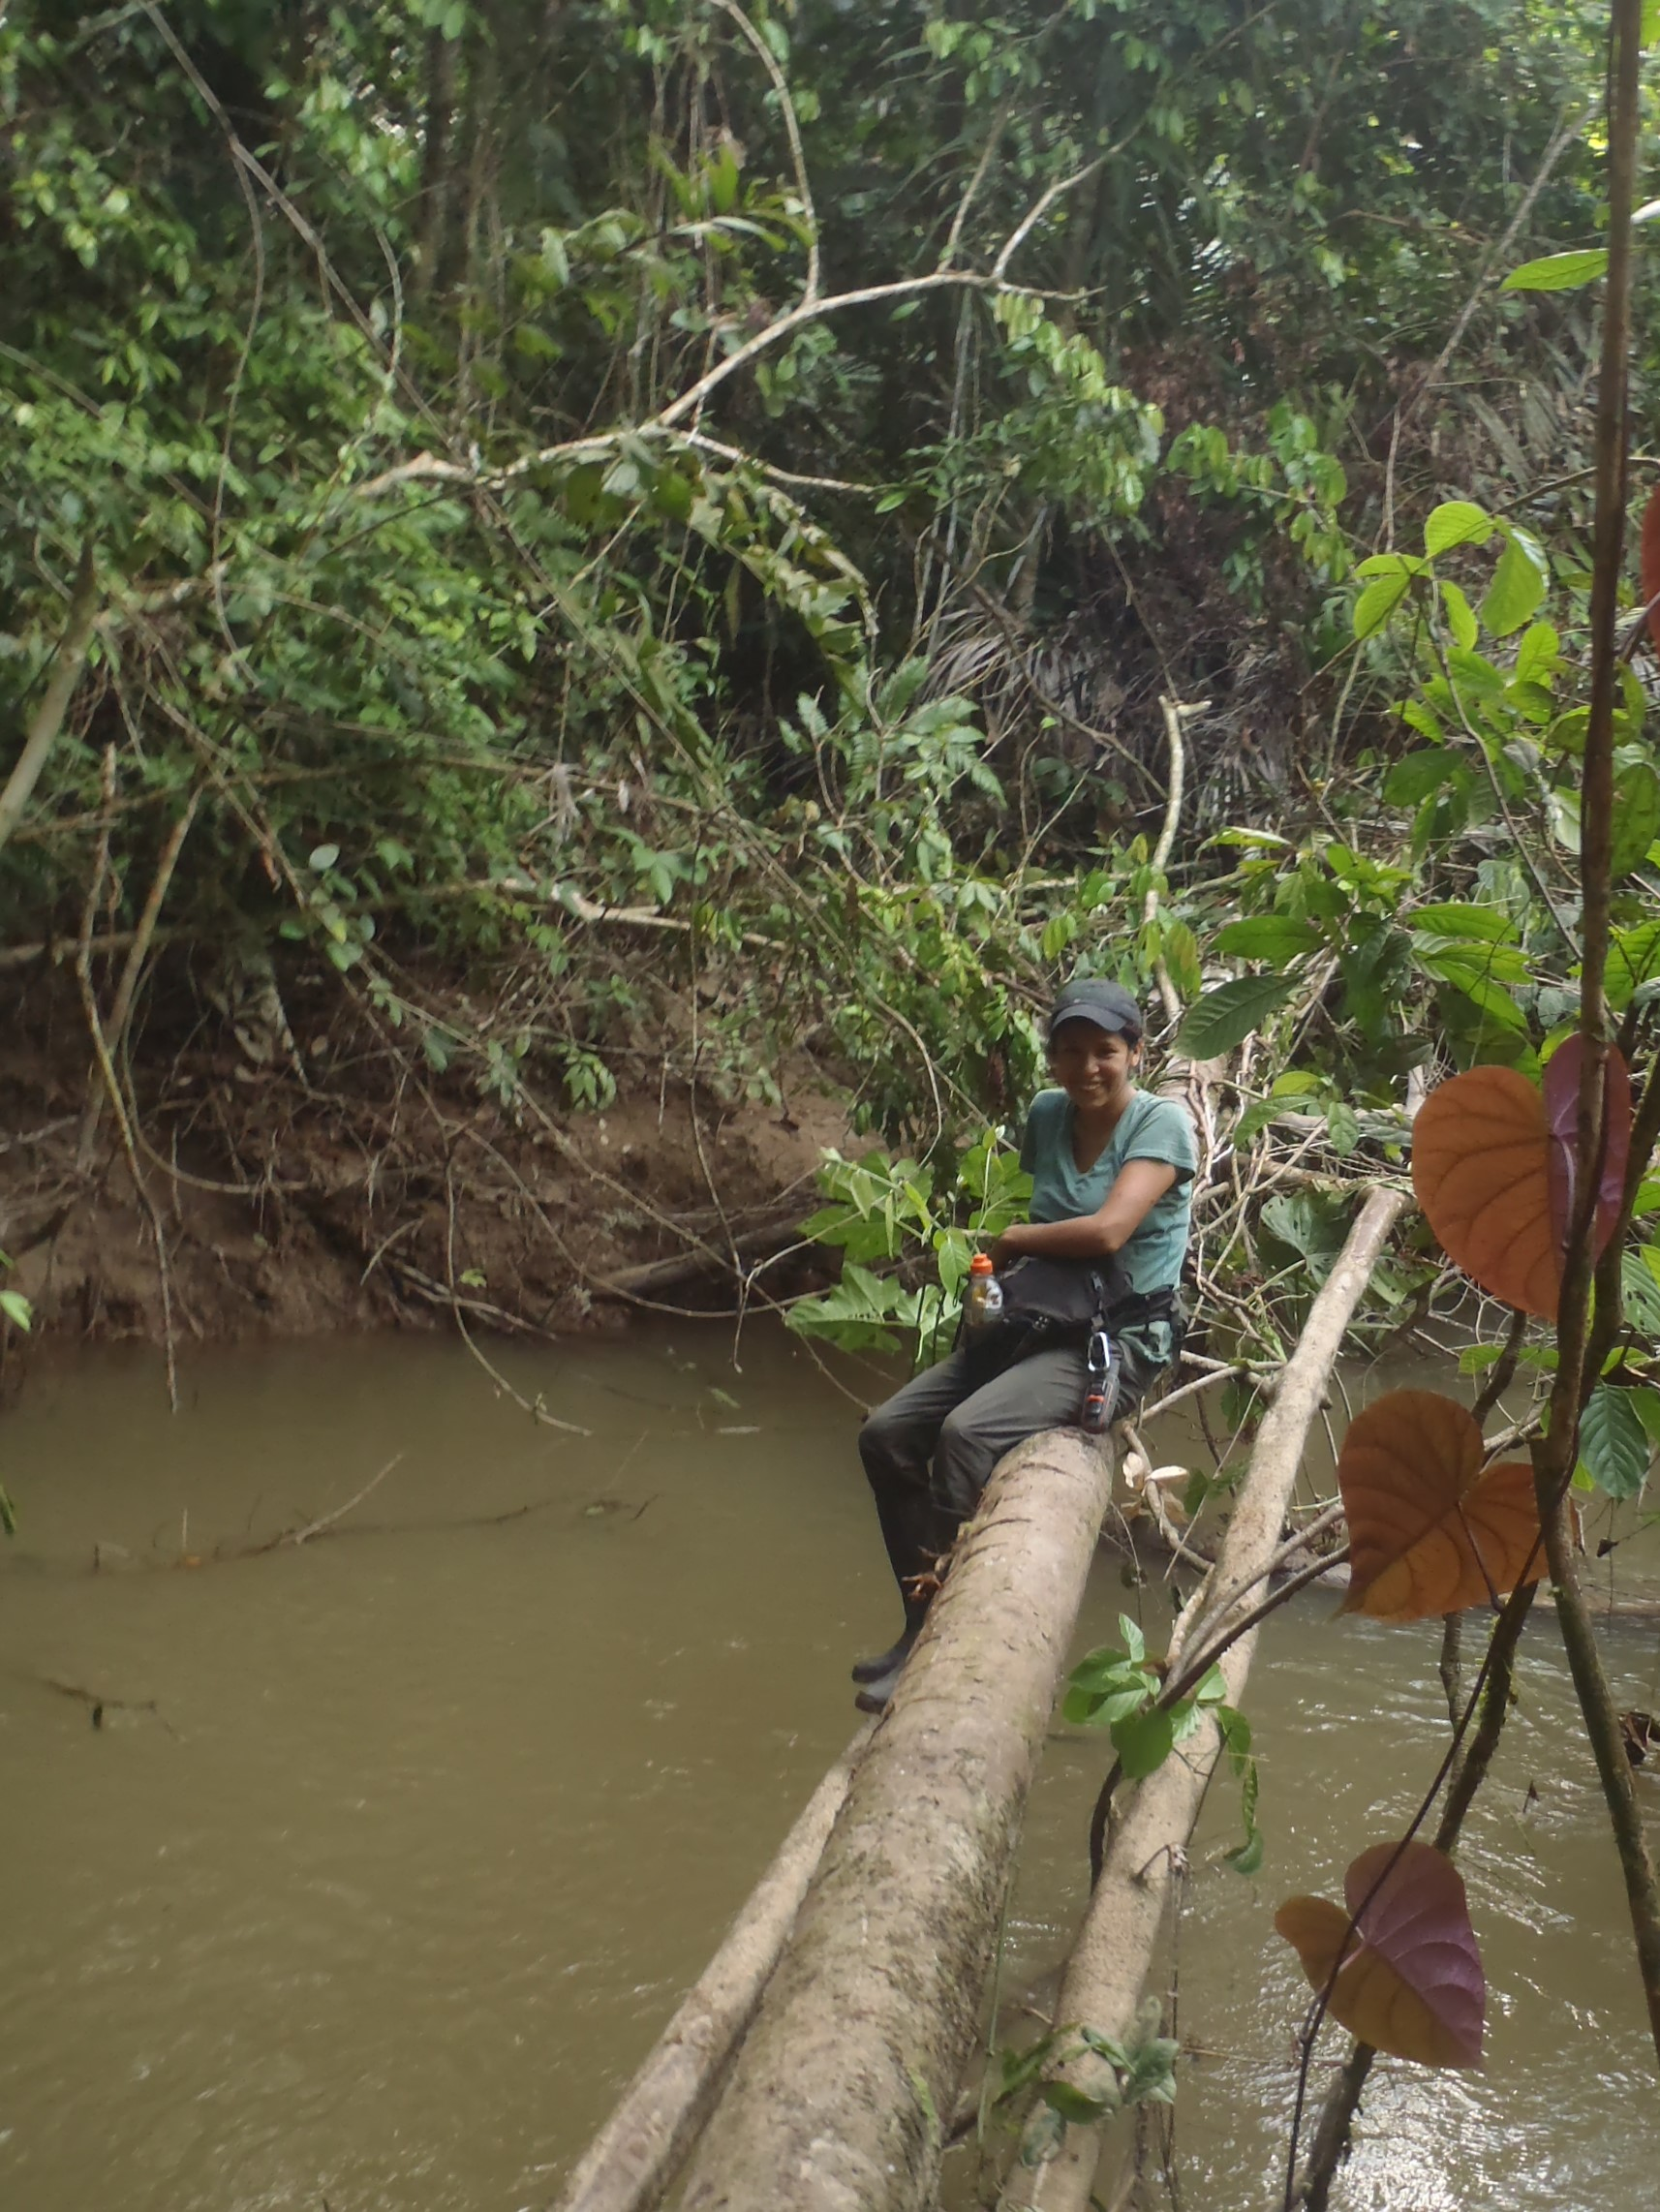 Field work at the Peruvian amazon